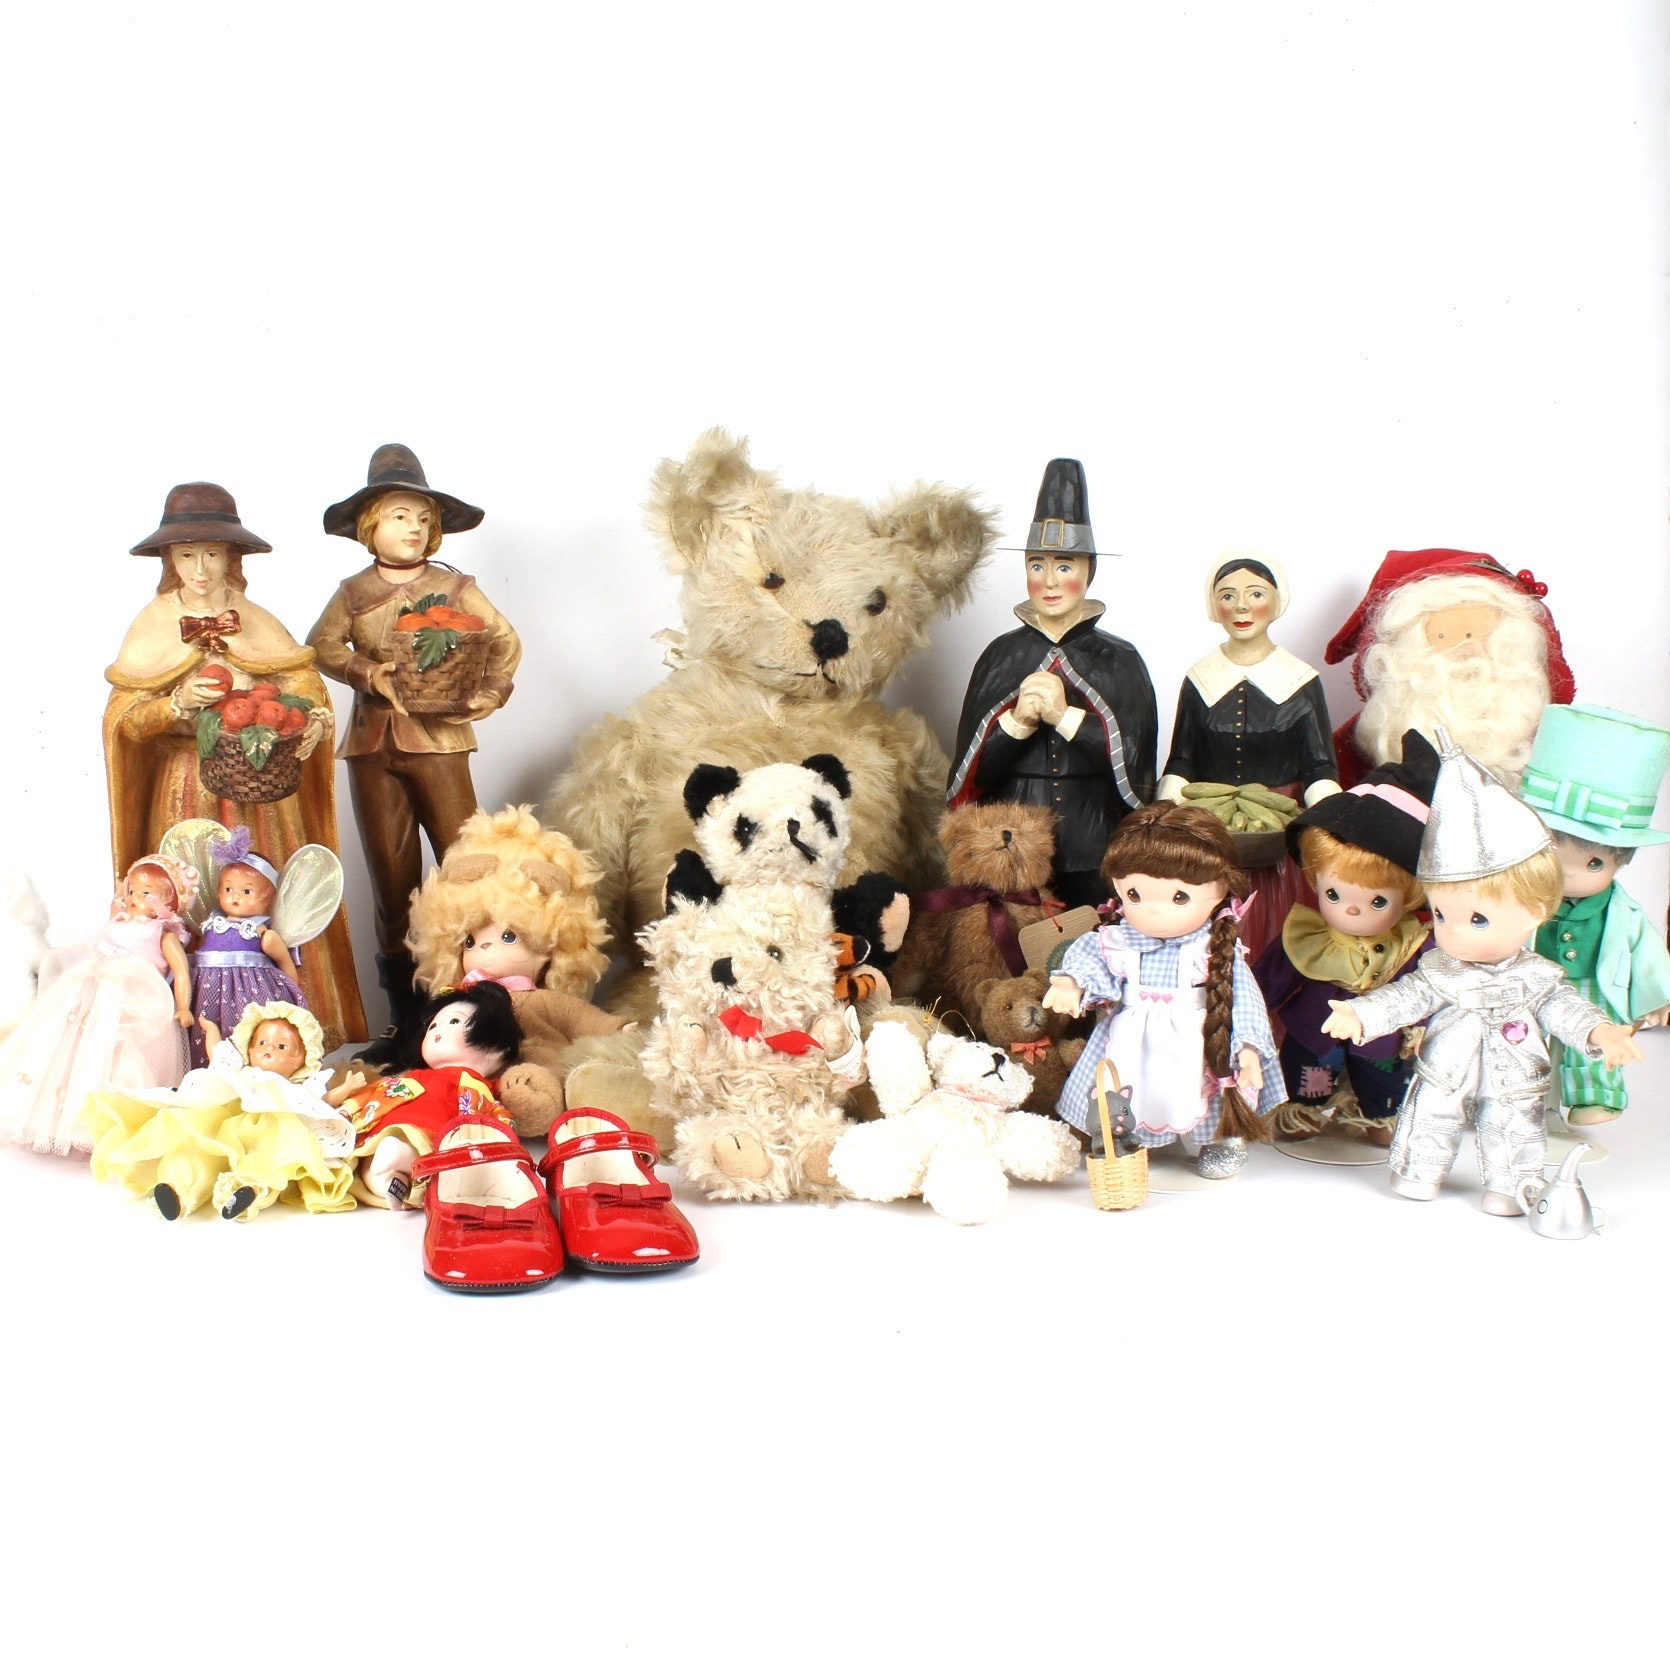 Collection of Dolls, Stuffed Animals and Figurines